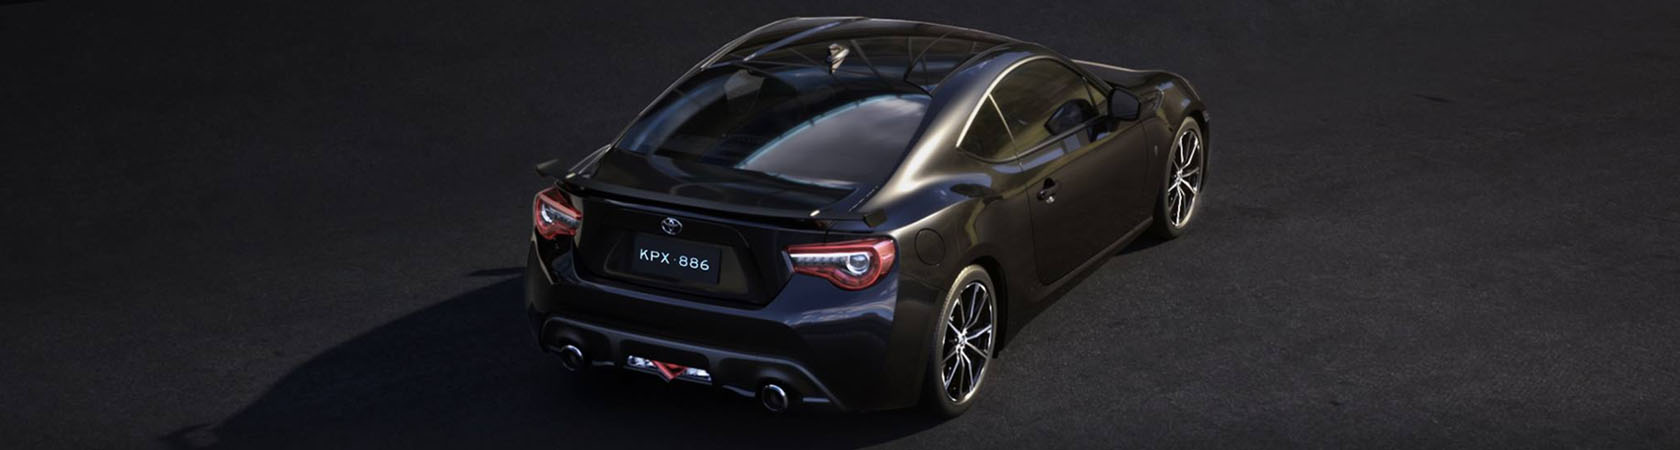 Turnbull Toyota 86